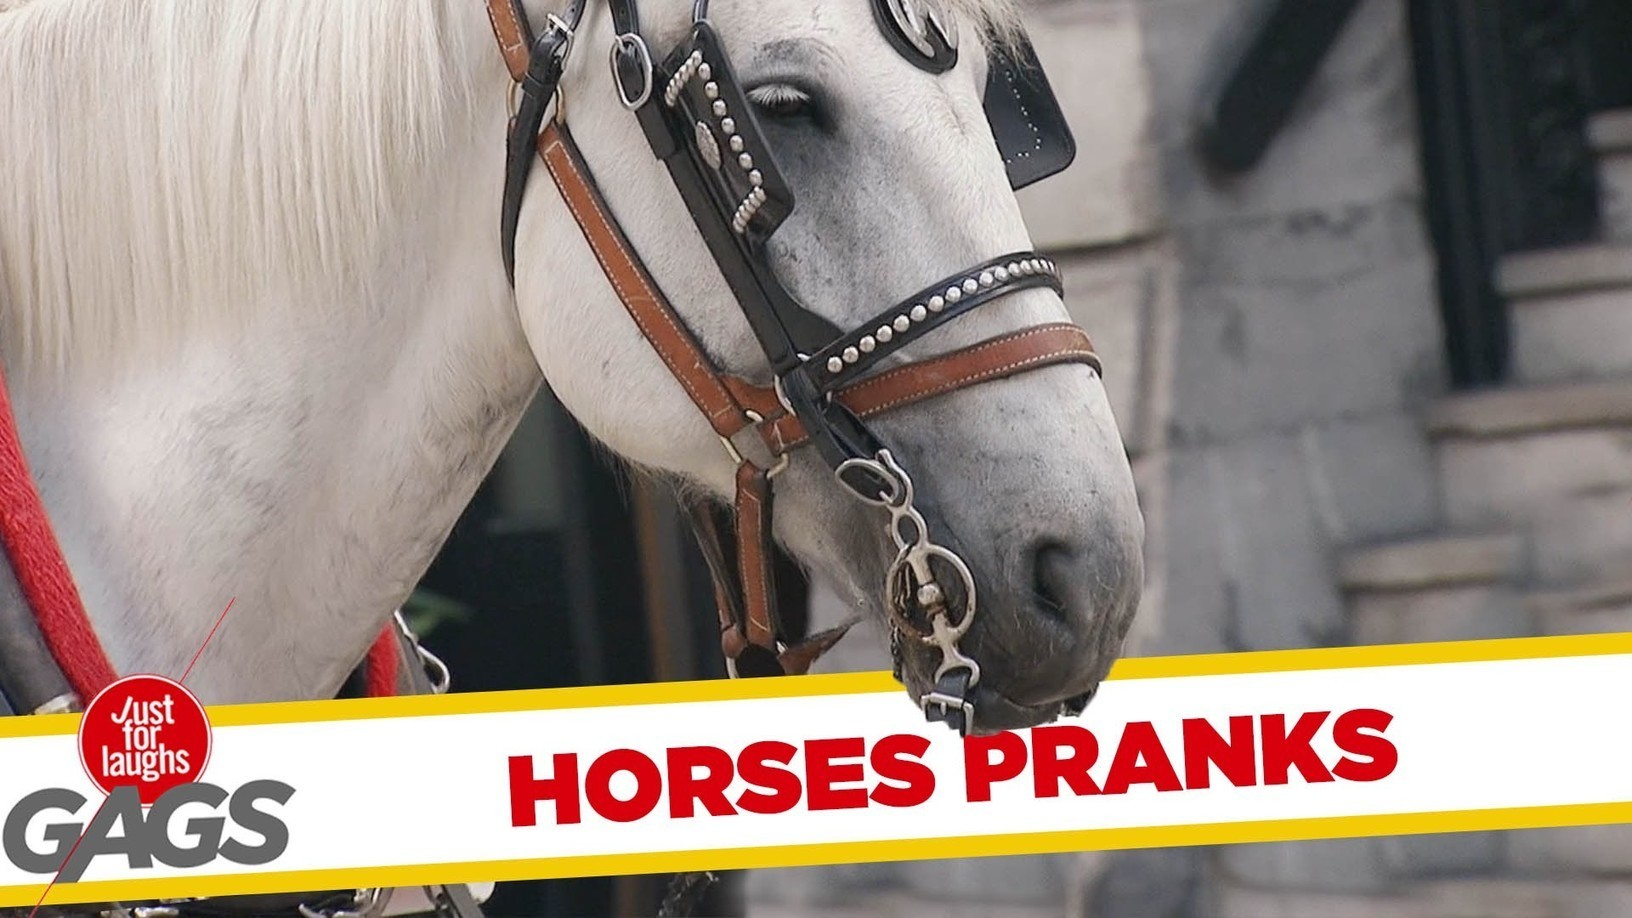 Best Horse Pranks Just For Laugh Dailymotion Vi